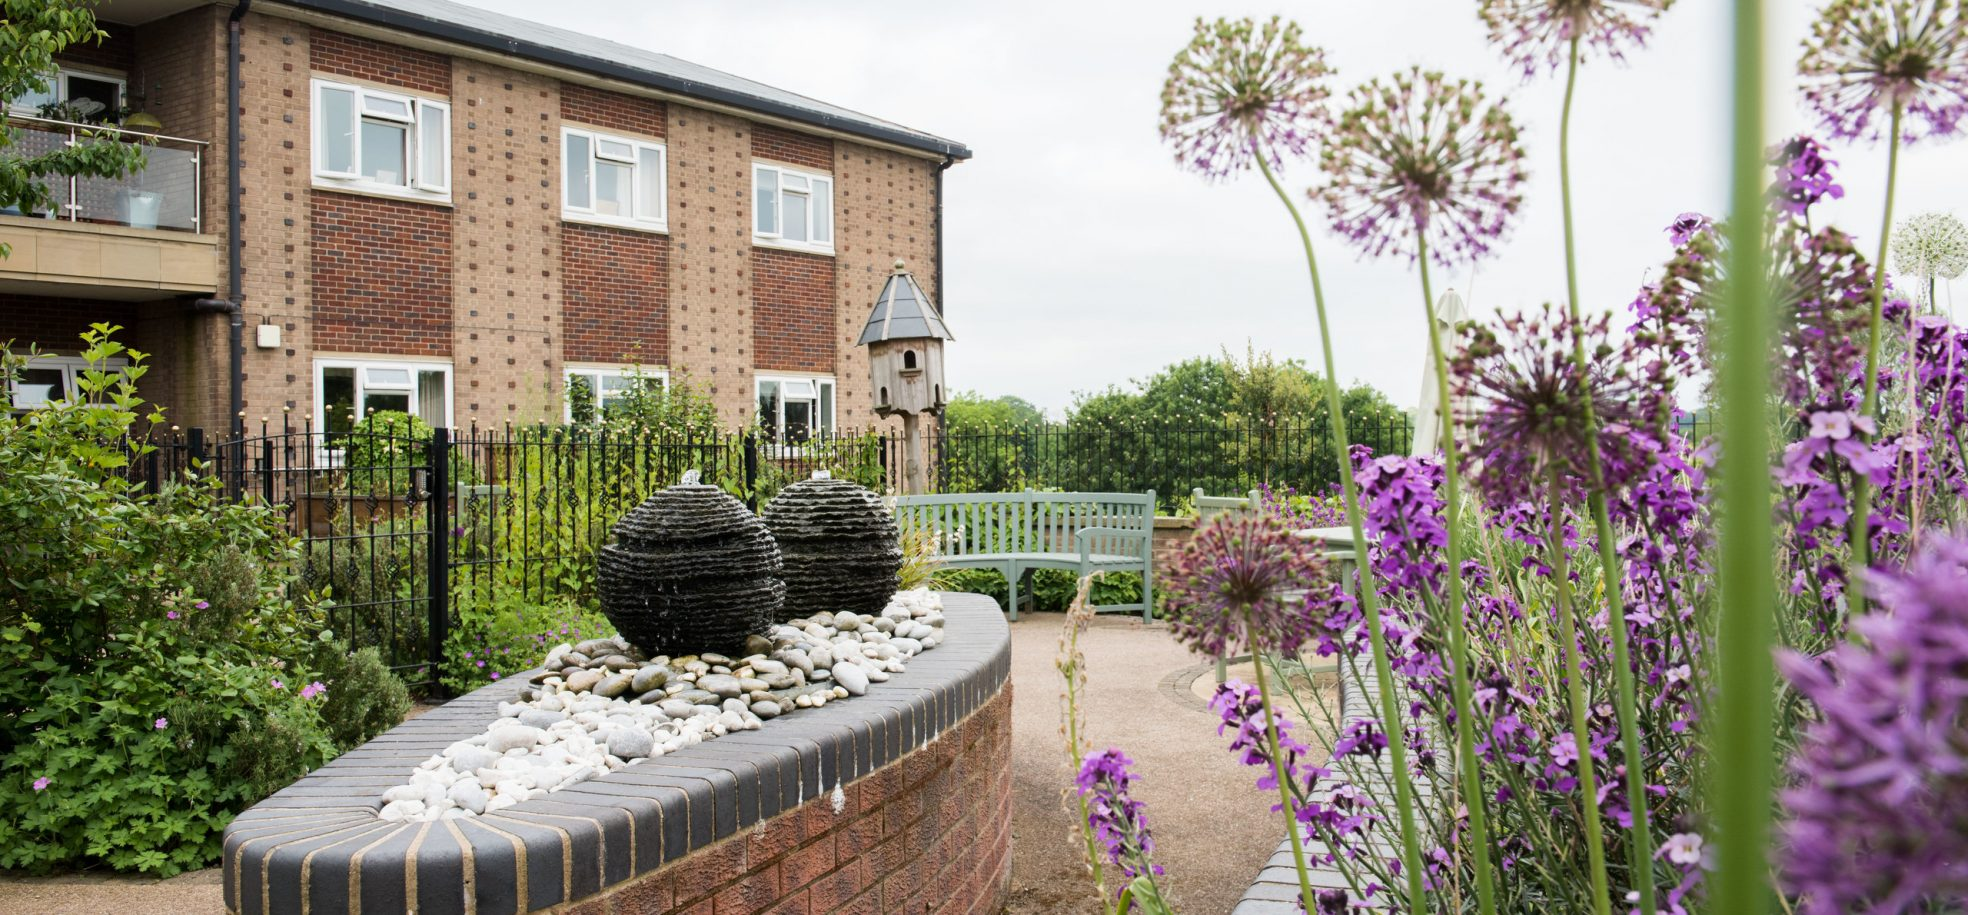 Gardens at Connaught Court